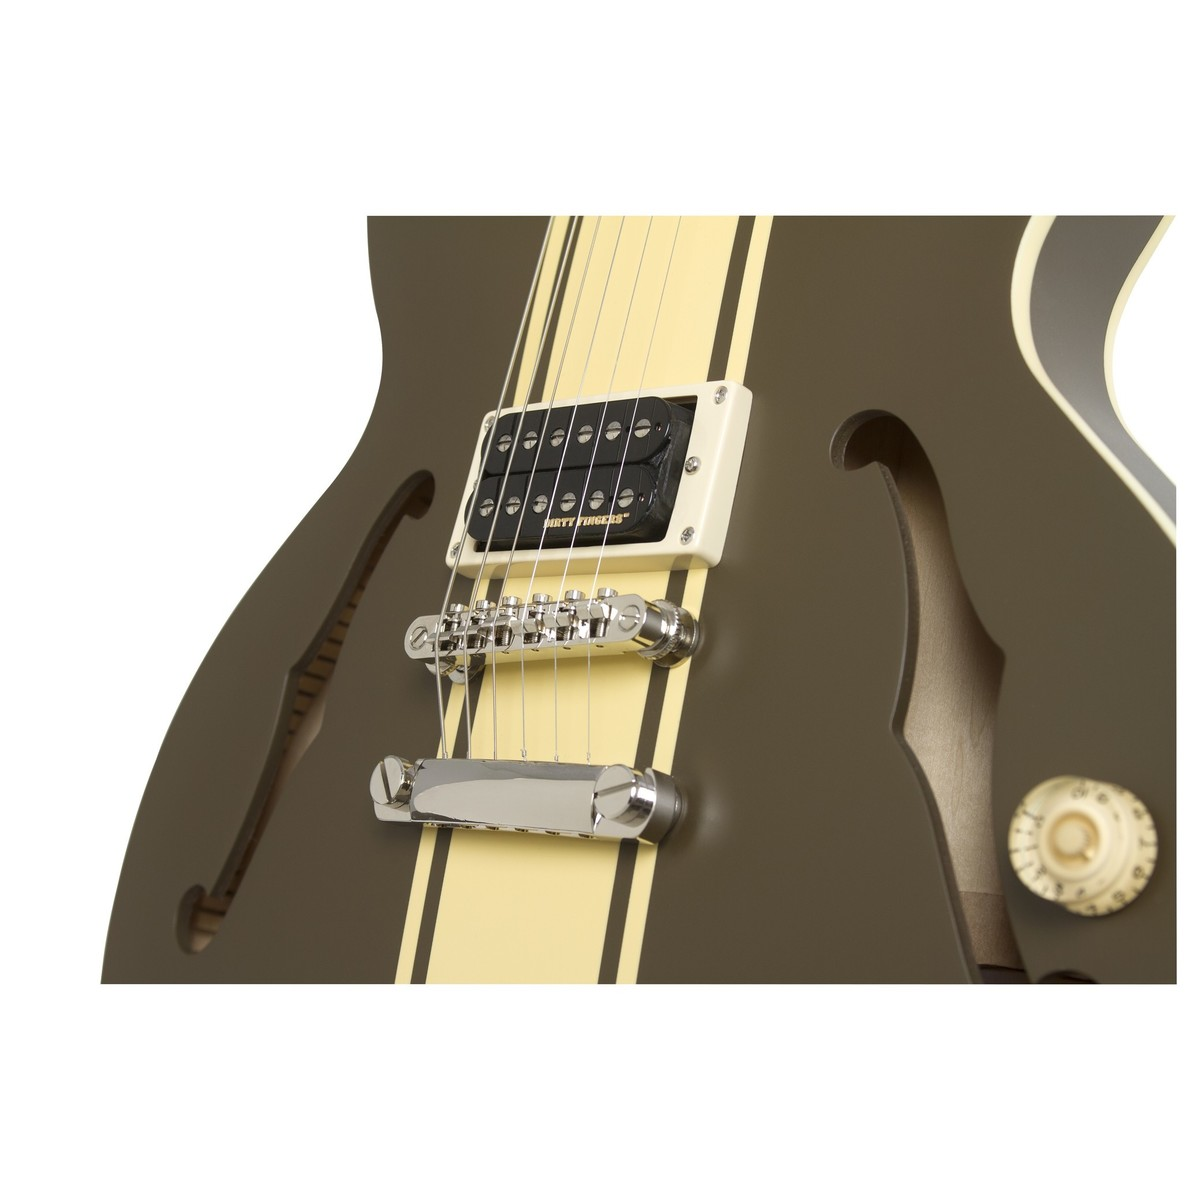 Epiphone Tom Delonge Riviera ES-333 at Gear4music on gibson les paul studio, gibson es bass, gibson 335 with bigsby, gibson dusk tiger, gibson les paul custom, gibson es-357, gibson flying v, gibson es series, gibson les paul bfg, gibson es 345td, gibson les paul standard, gibson es models, gibson es-345, gibson es 356, gibson dark fire, gibson es 369, gibson les paul special, gibson melody maker, gibson es artist, gibson es 330l,